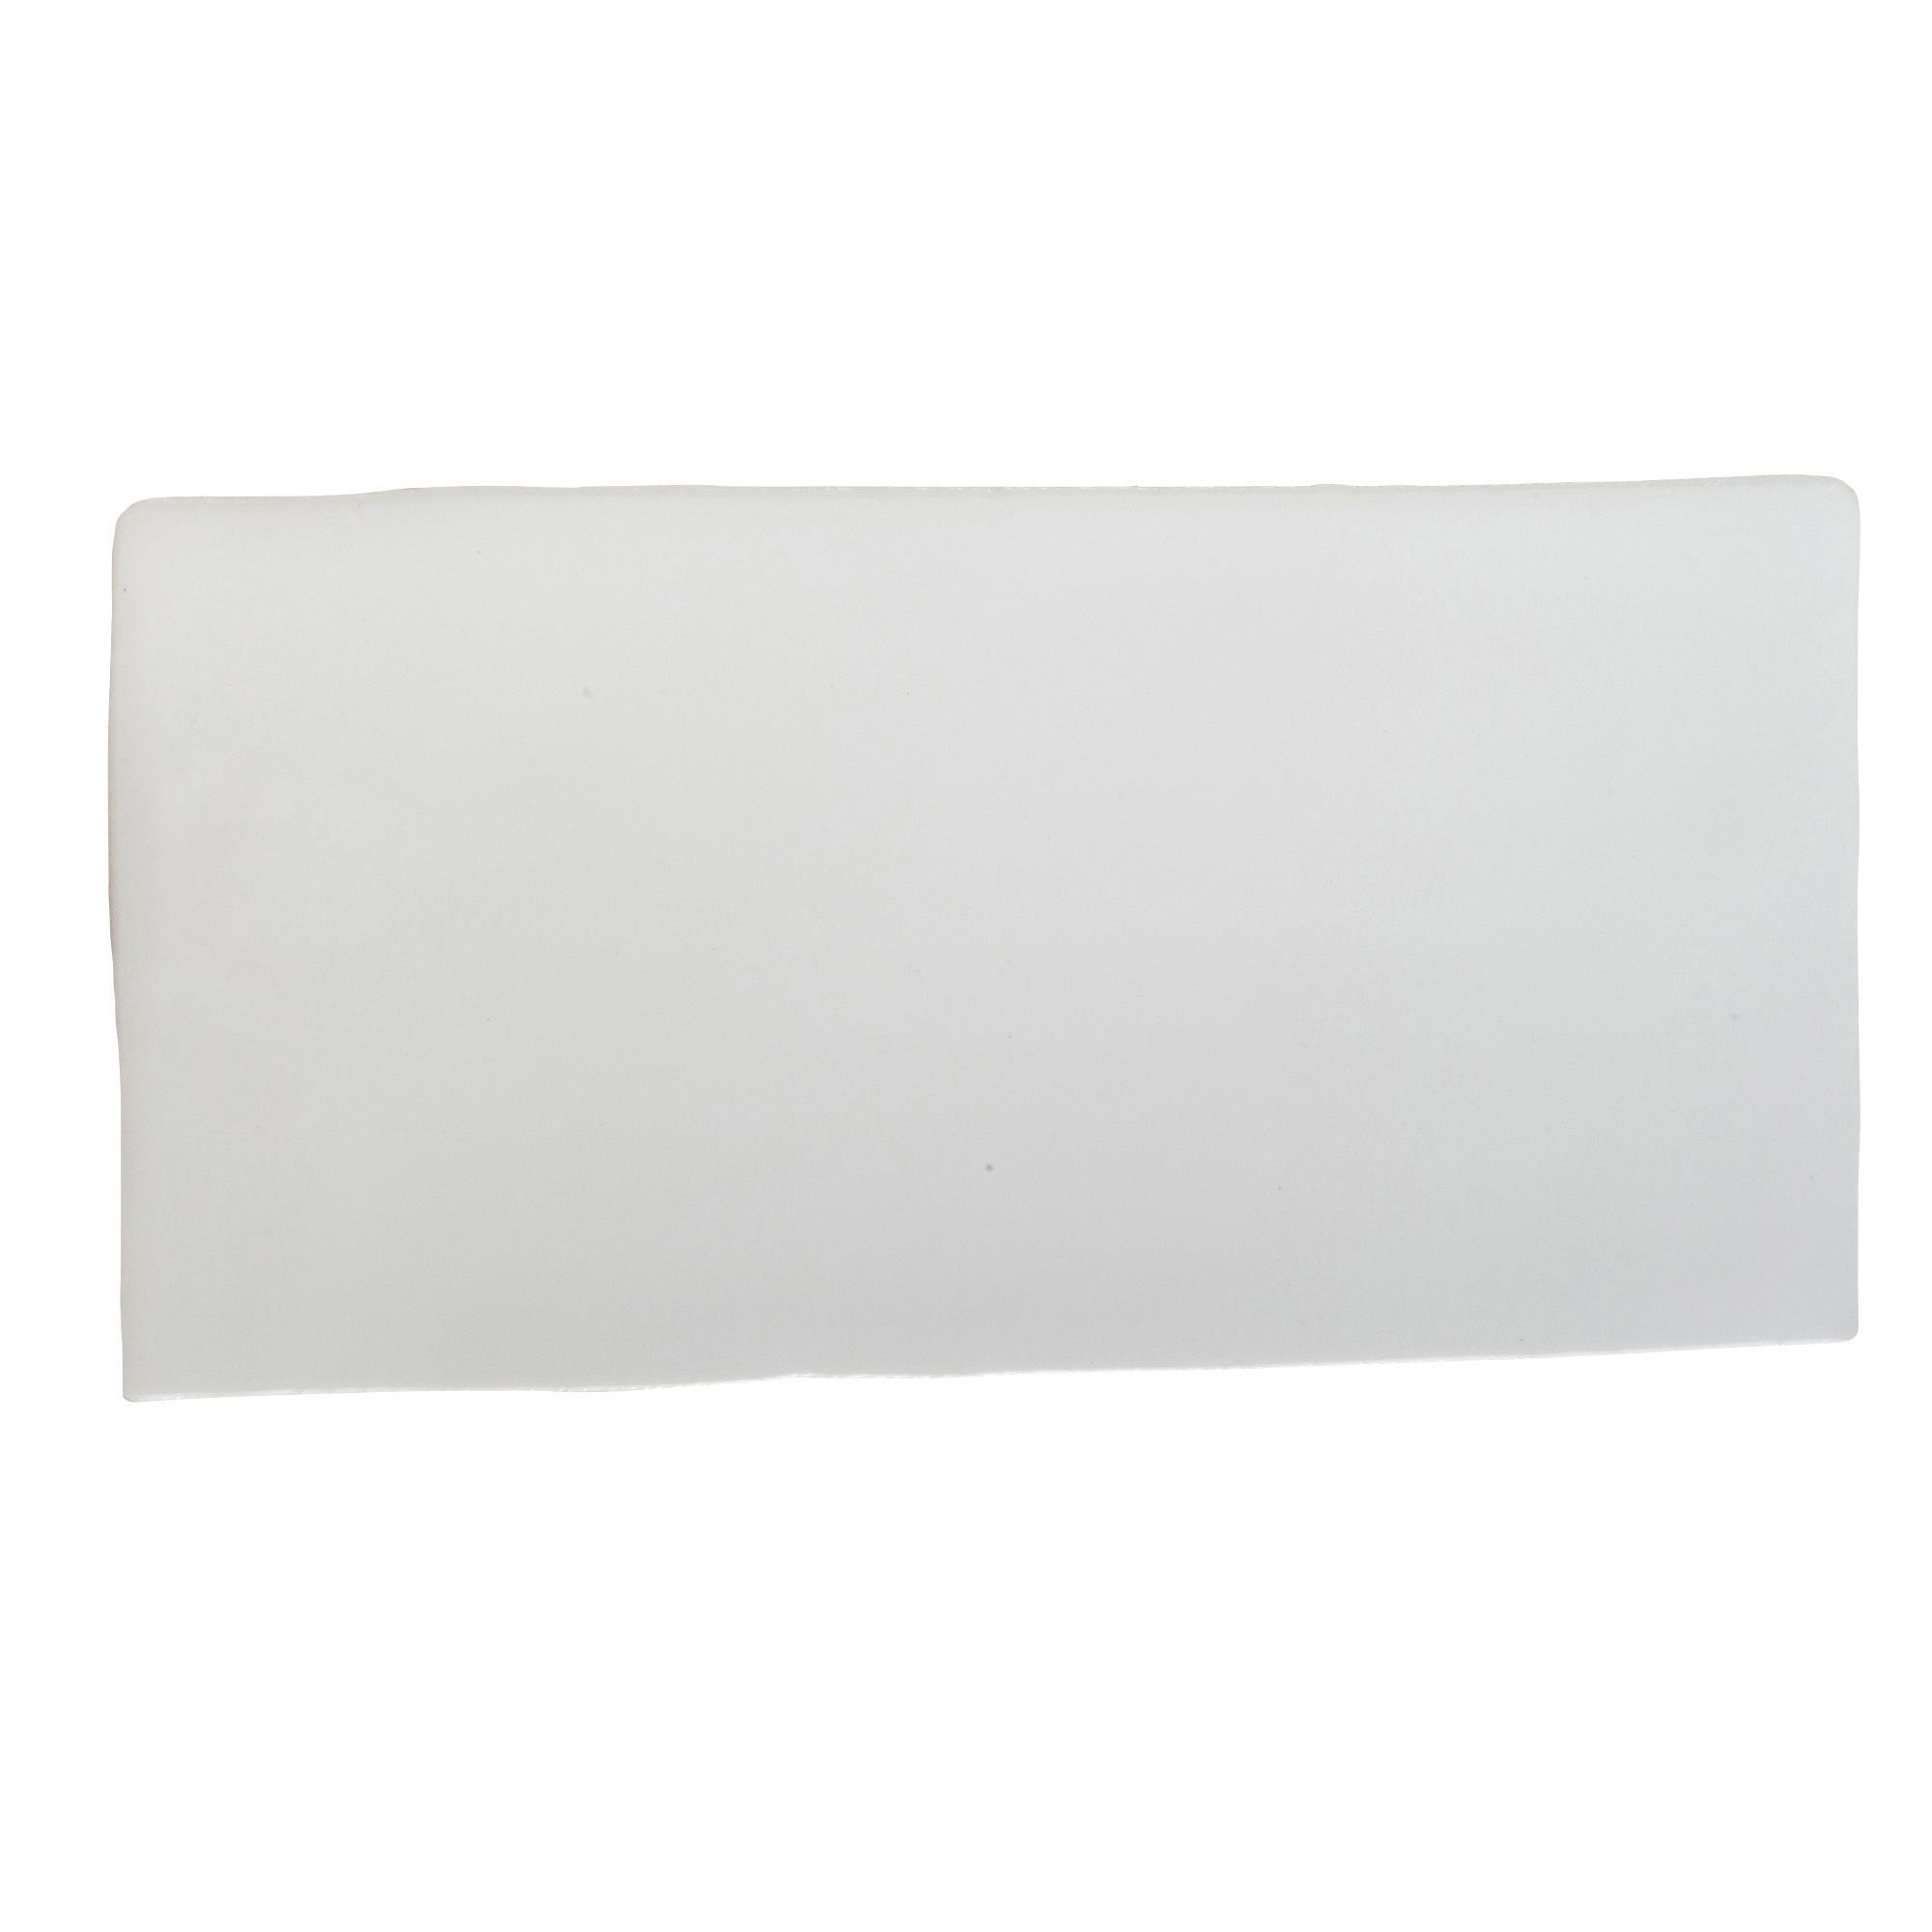 Bq Kitchen Floor Tiles Padstow White Ceramic Wall Tile Pack Of 44 L150mm W75mm